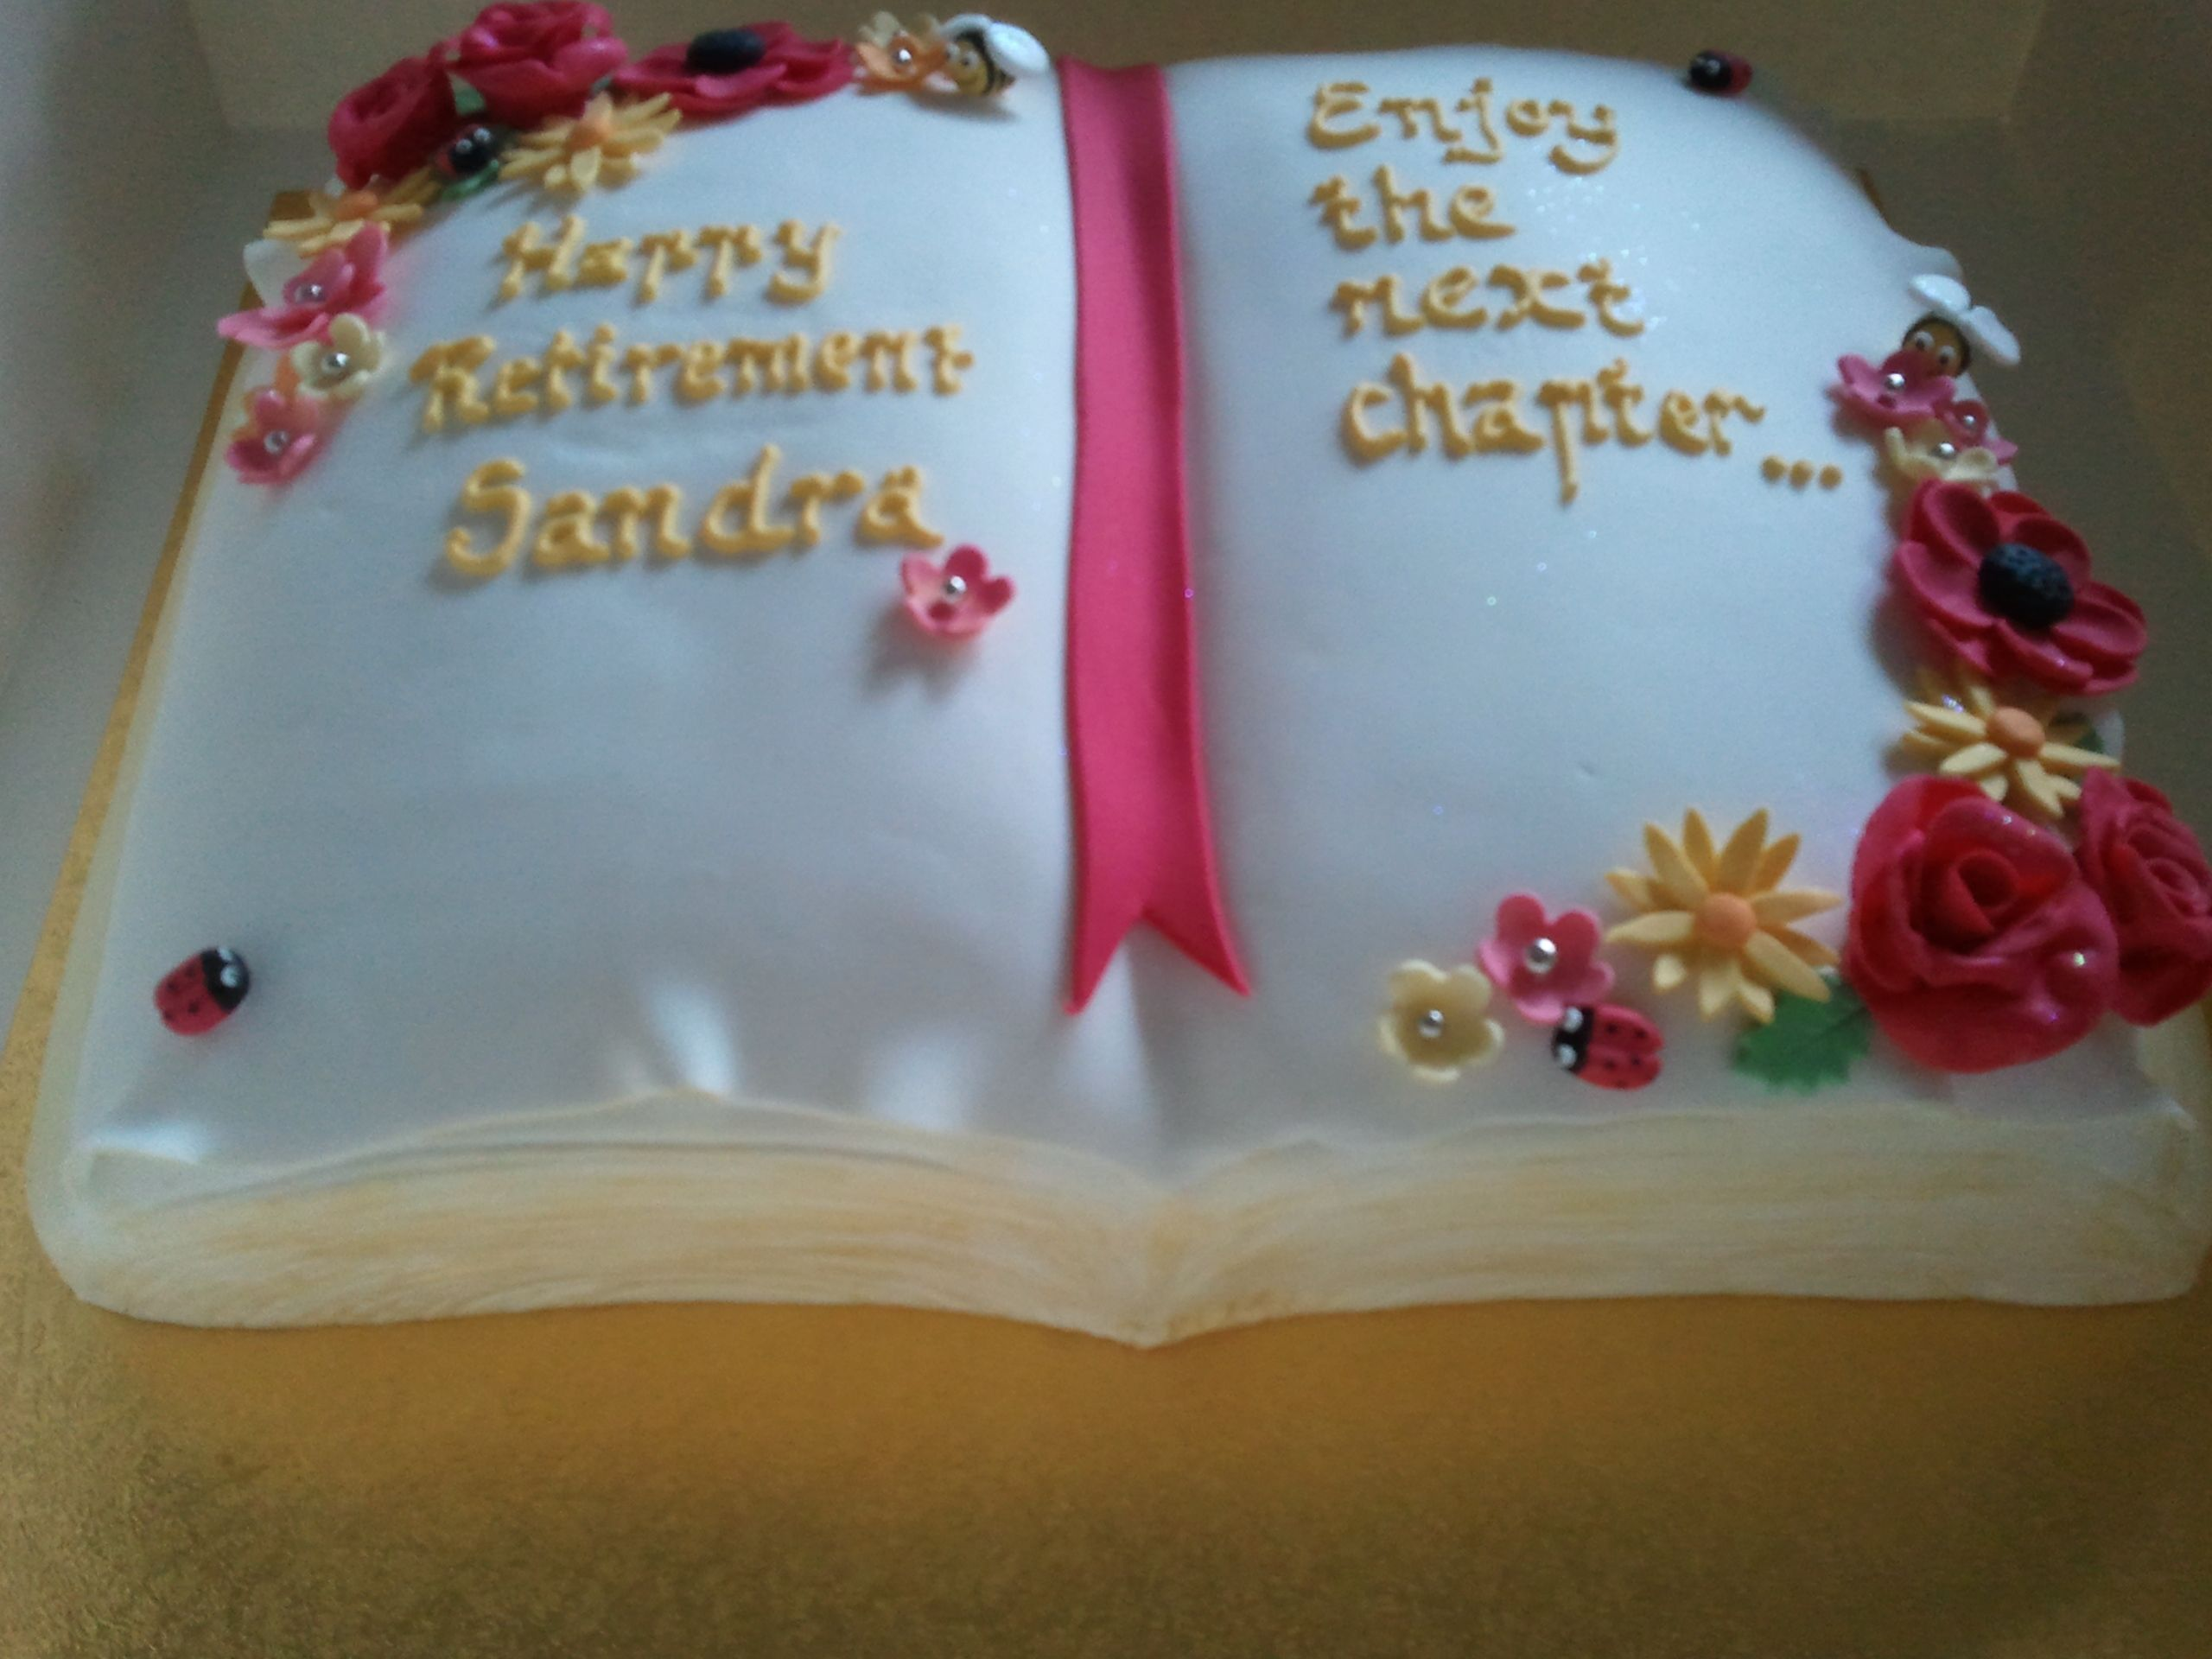 Happy Retirement Sandra - Chocolate cake, carved and covered with fondant and handmade fondant decorations. Made with love for a work colleague and friend.